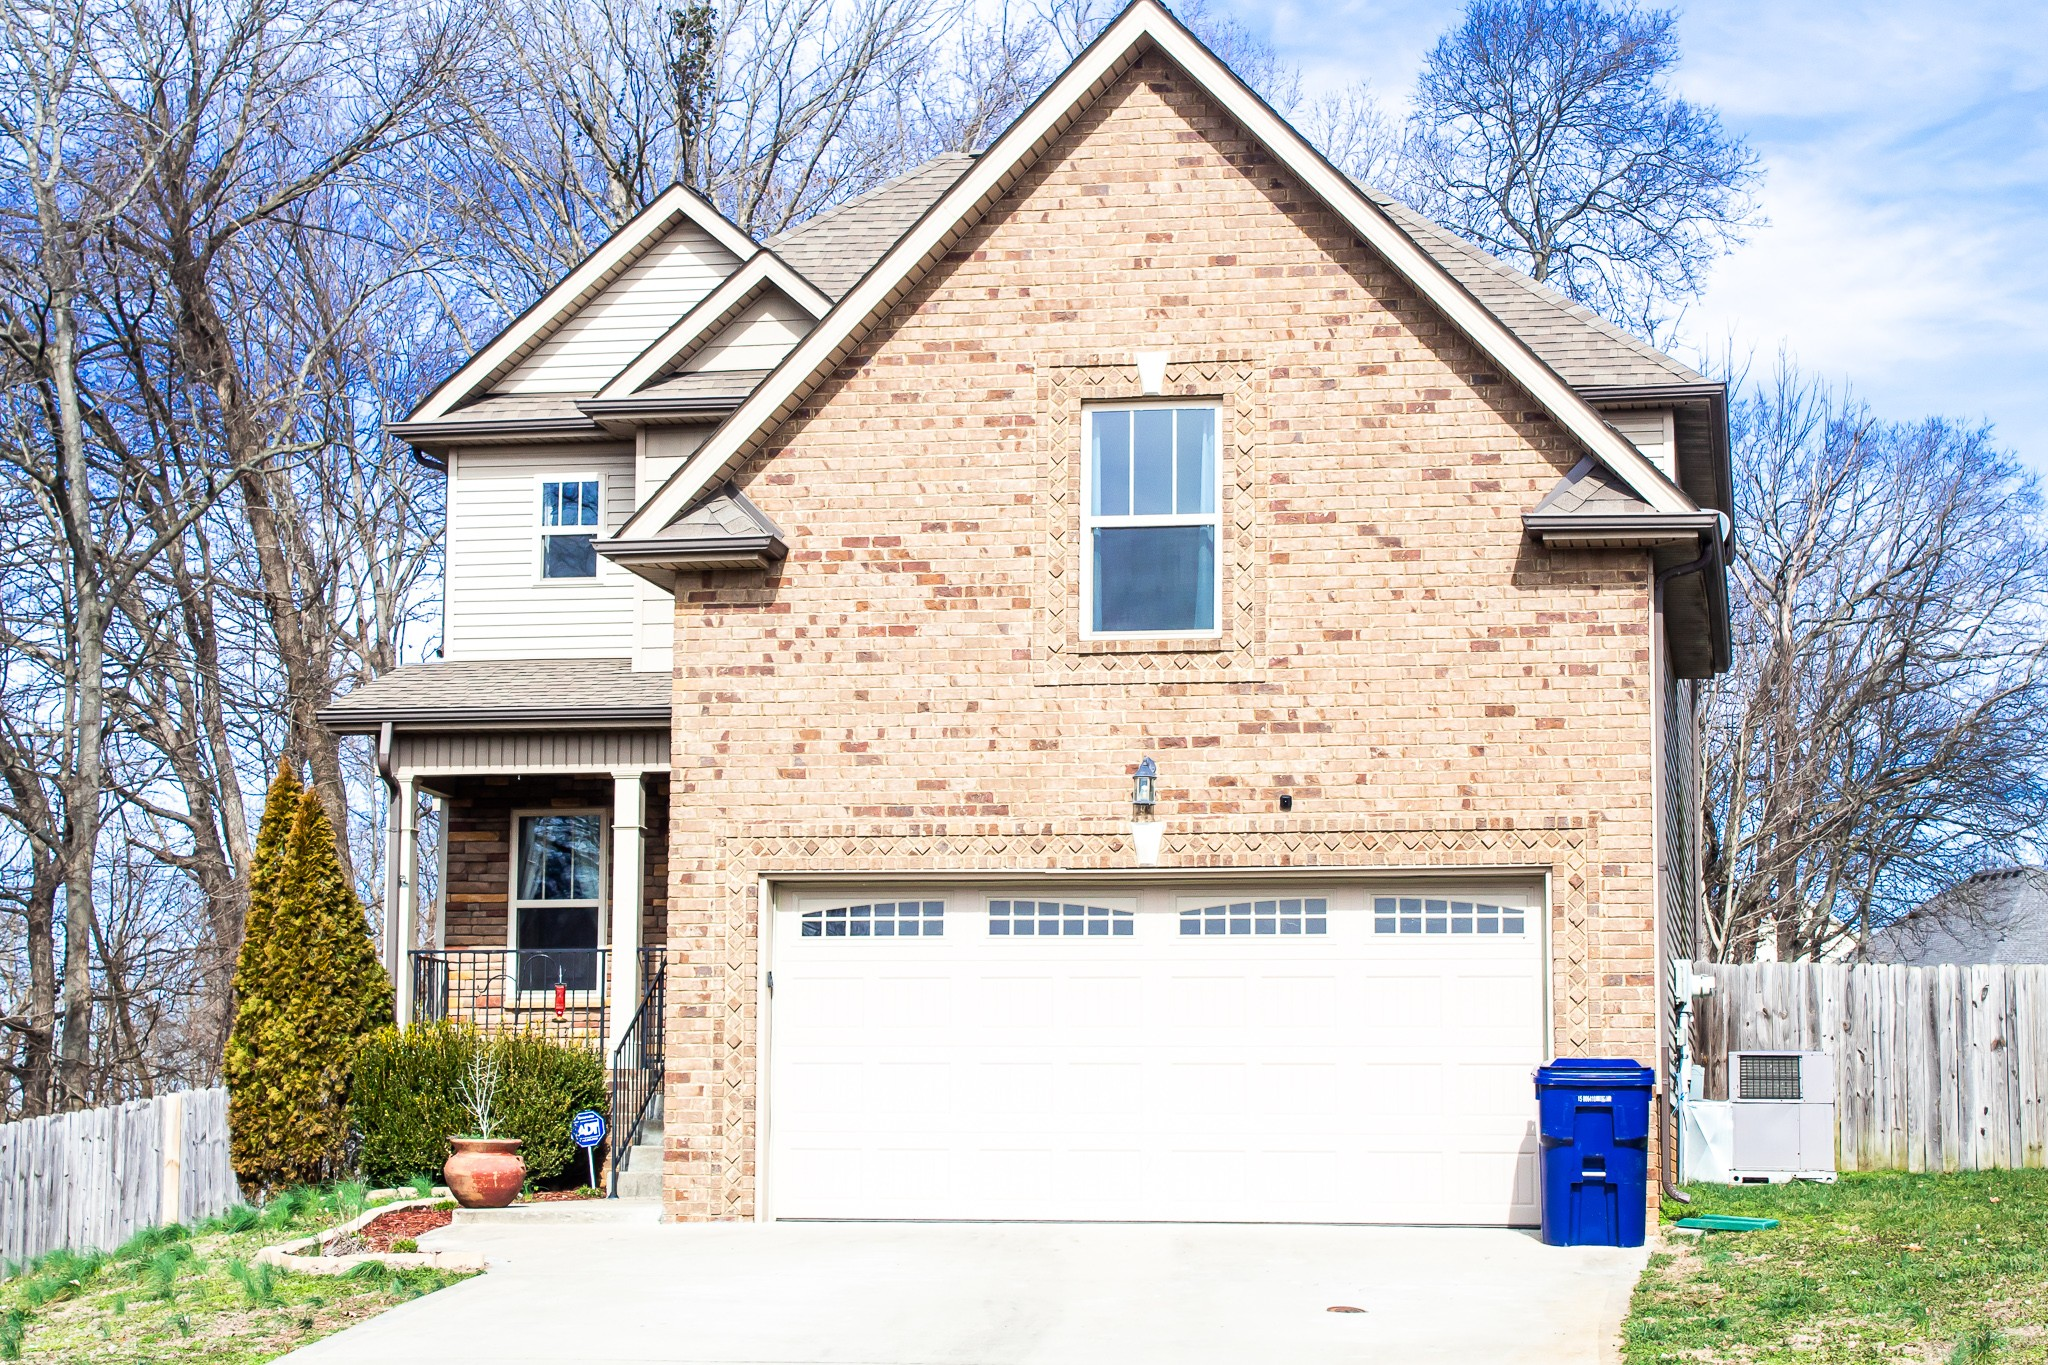 944 Excalibur Dr, Clarksville, TN 37040 - Clarksville, TN real estate listing